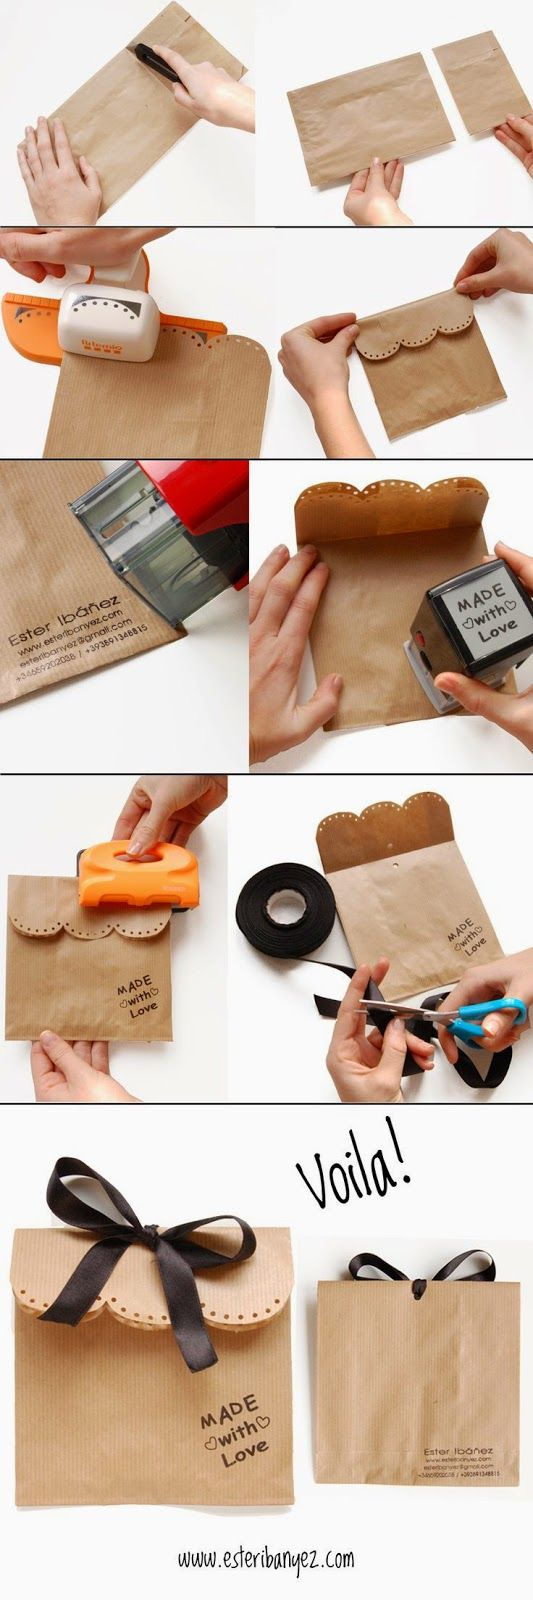 Adictaaloscomplementos: Packaging bonito con papel kraft